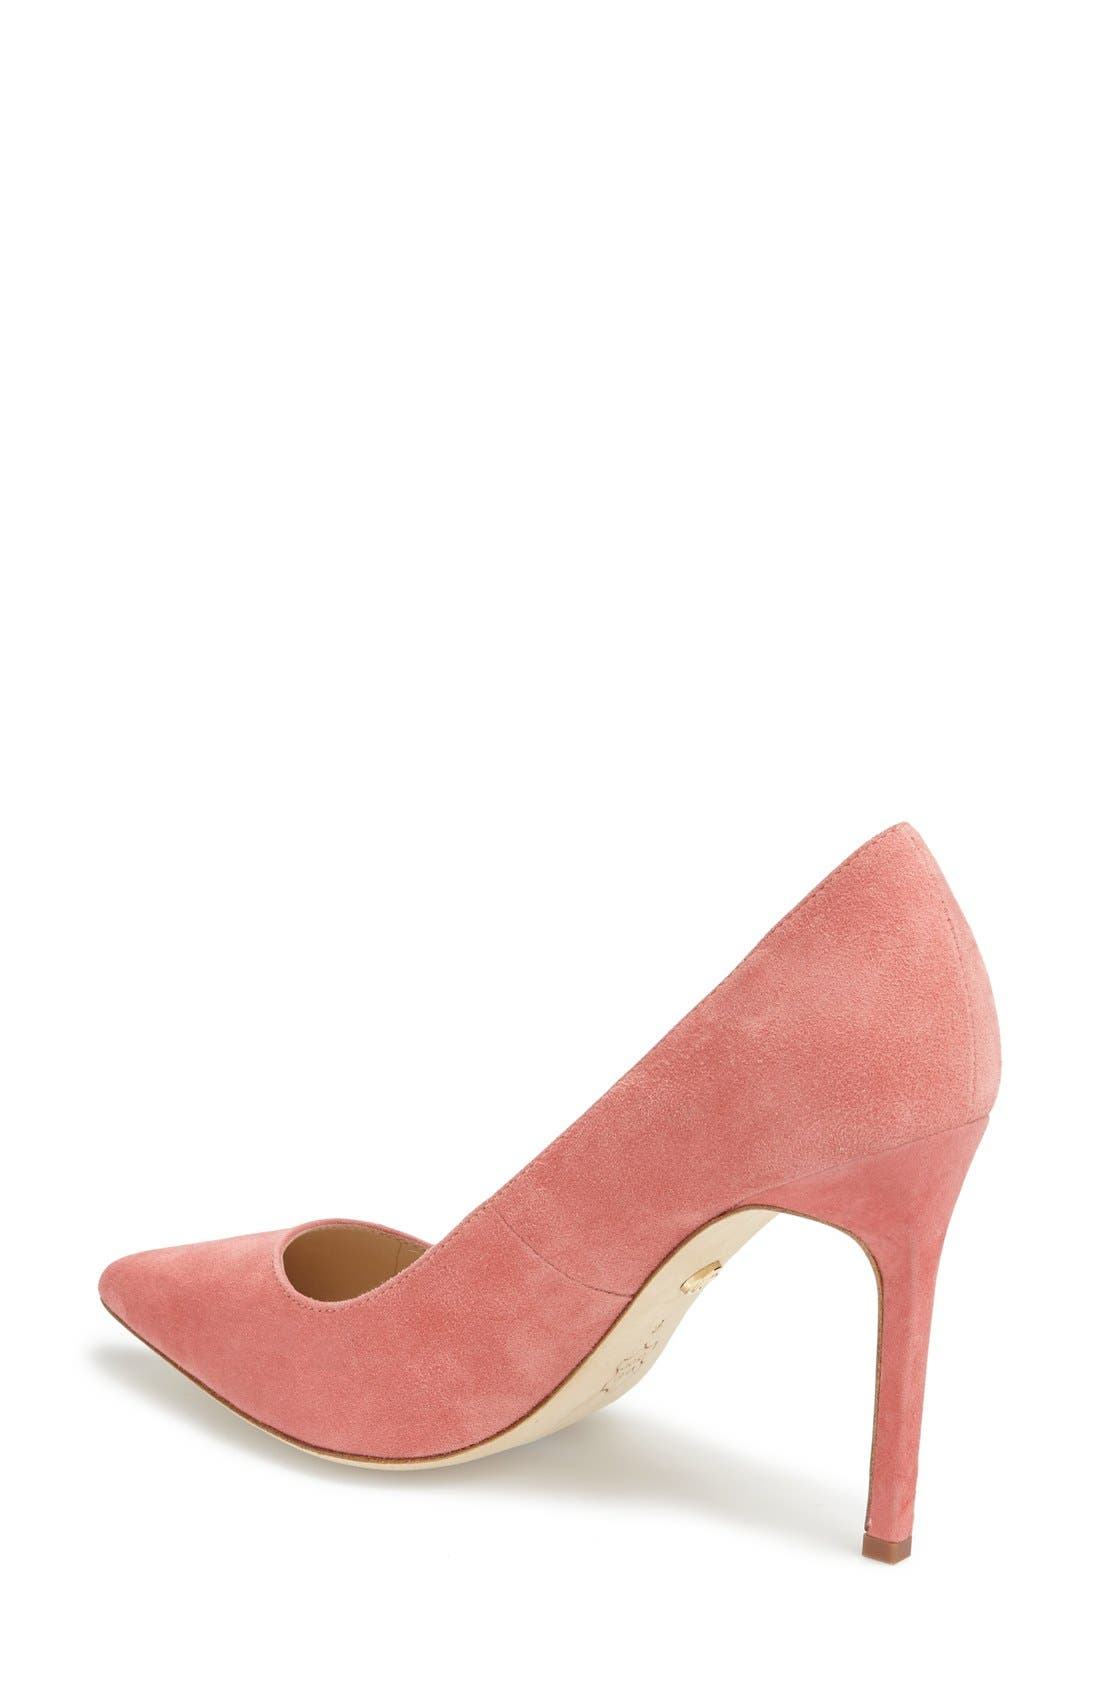 'Caterina' Pointy Toe Pump,                             Alternate thumbnail 40, color,